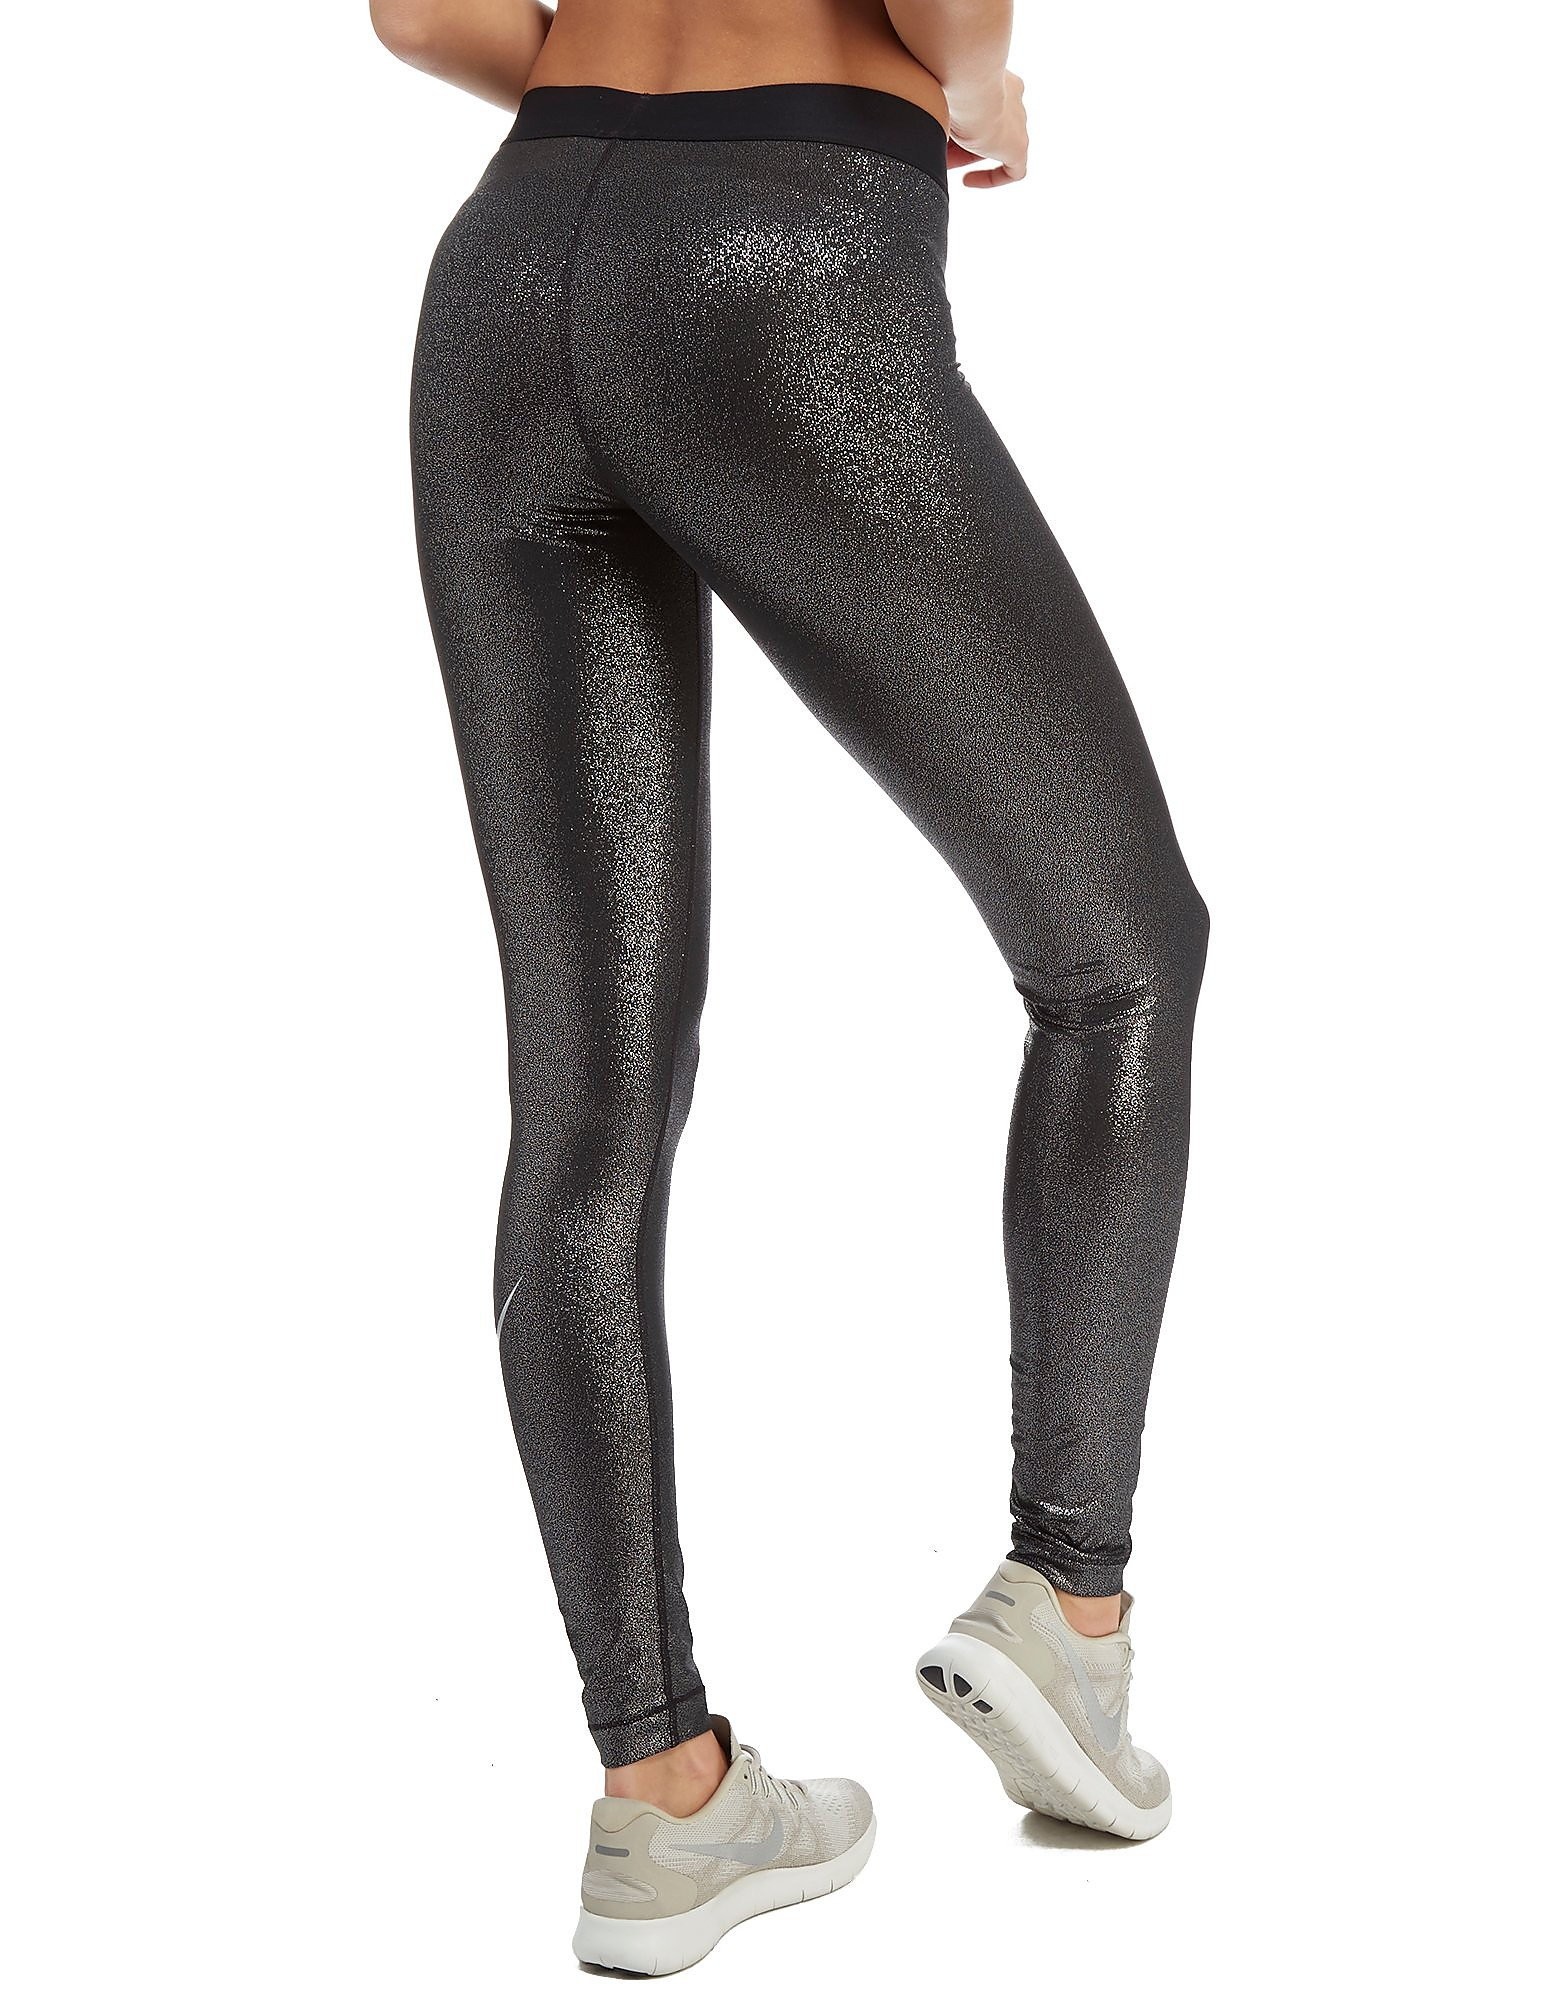 Nike Pro Sparkle Training Tights